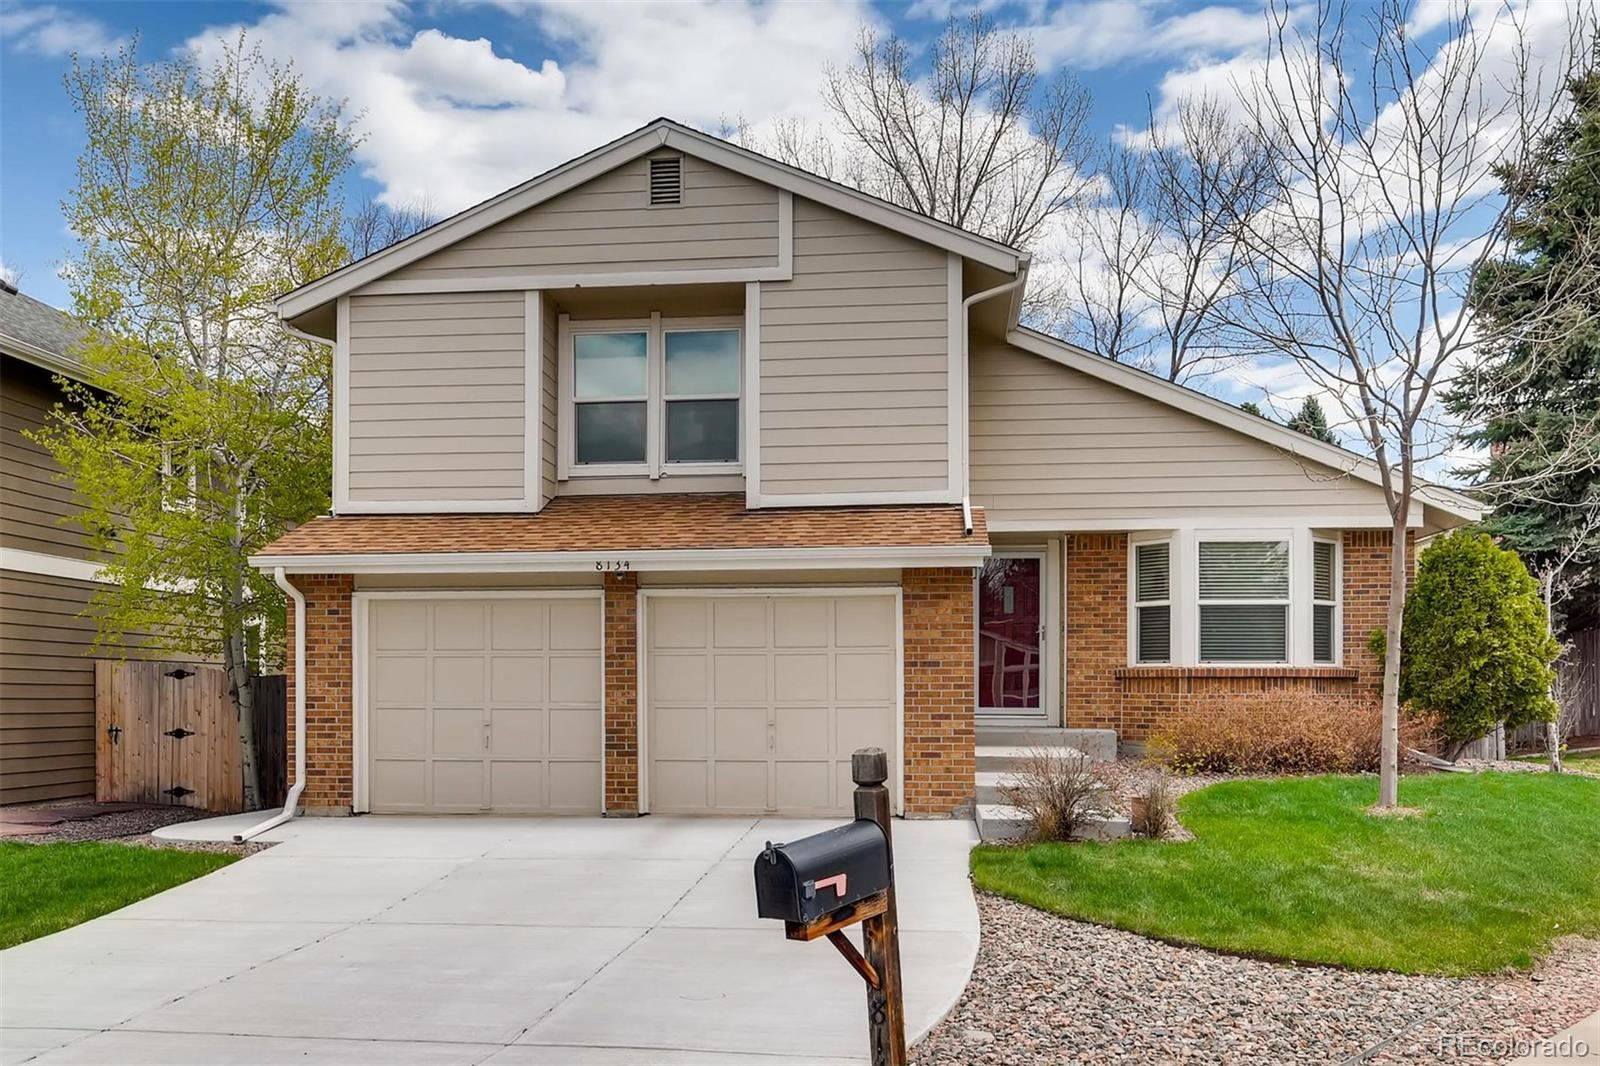 8134 S Spruce Court, Centennial, CO 80112 - #: 8142561